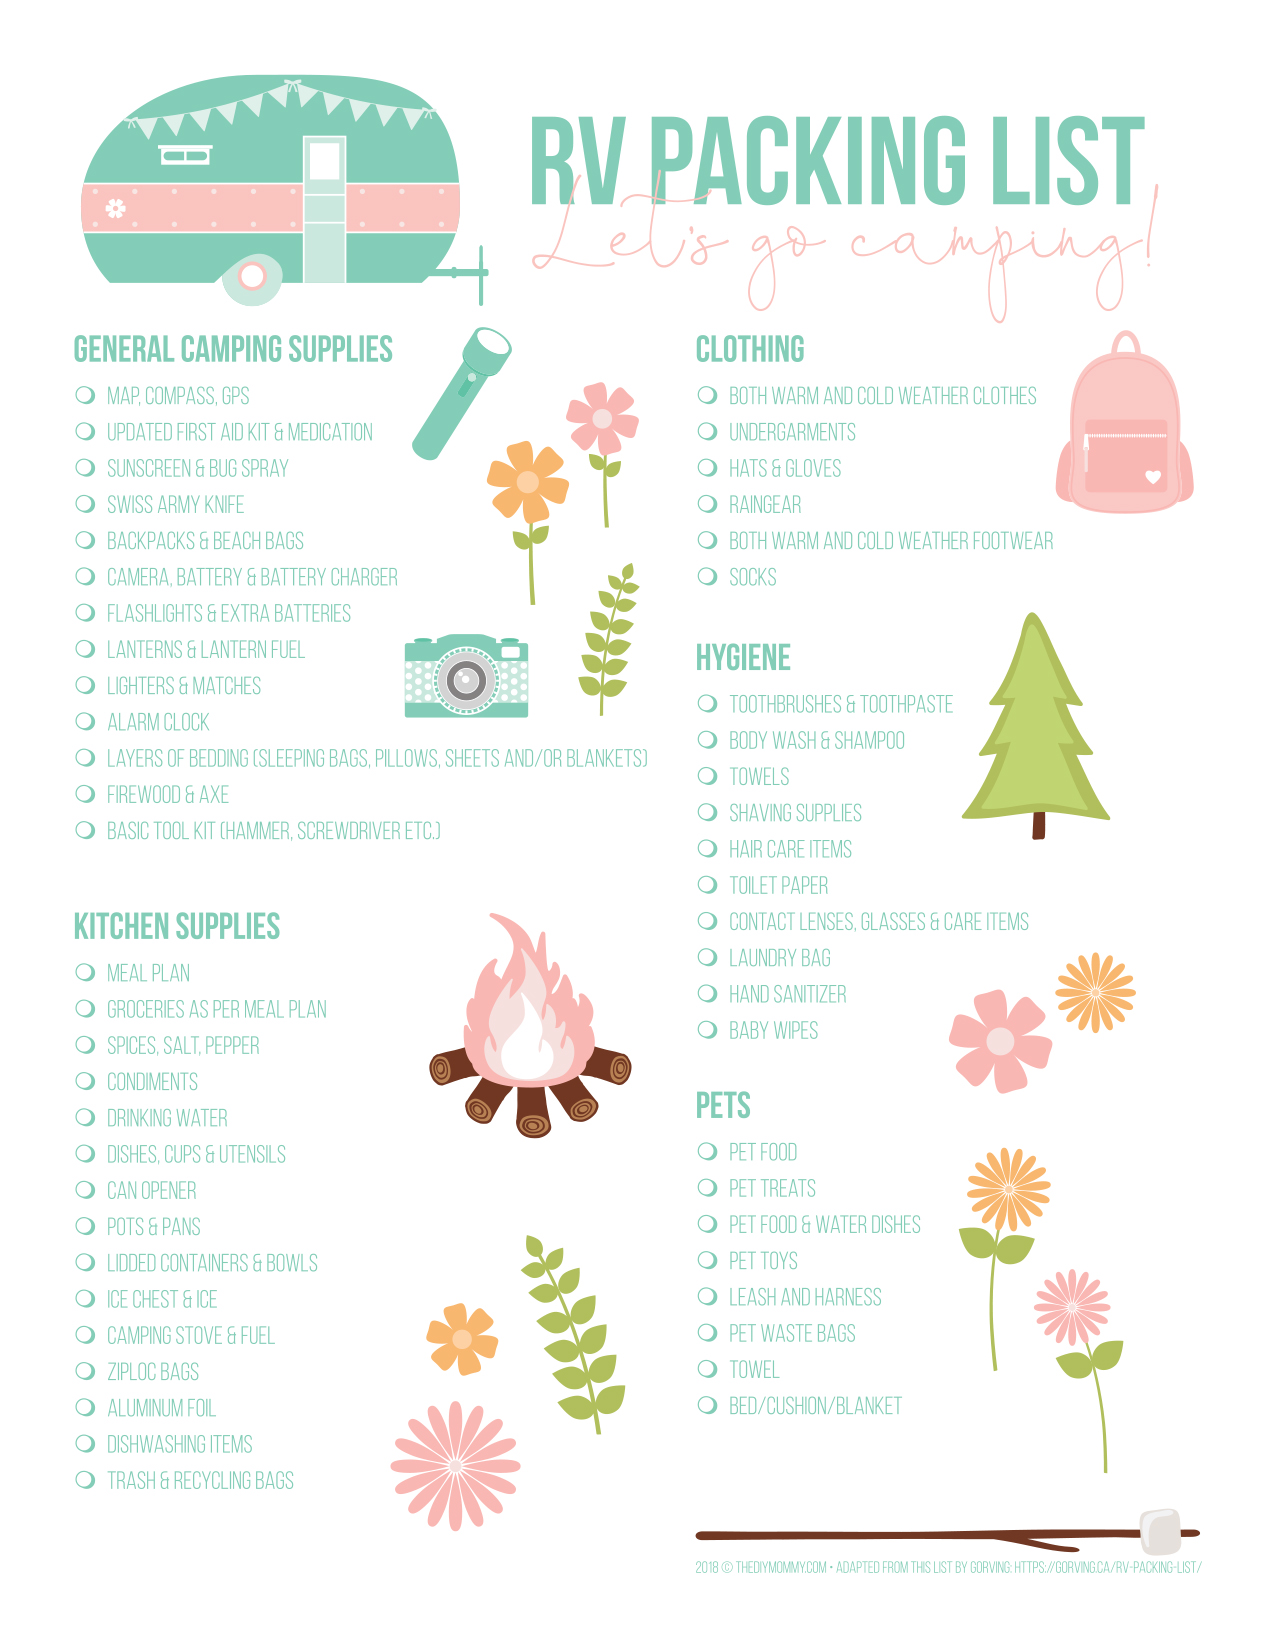 image about Rv Checklist Printable named RV Packing Listing No cost Printable (and its thus lovely!) The